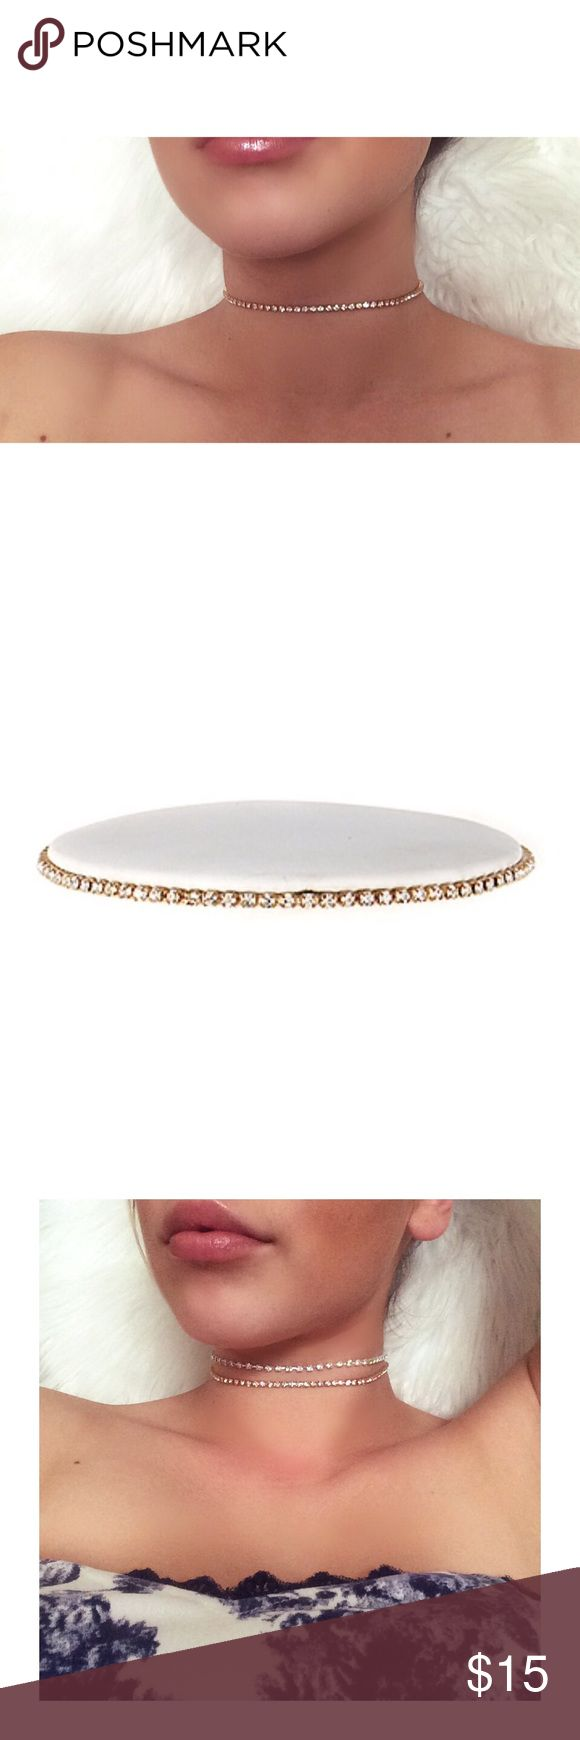 Rose Gold Choker Single row of gorgeous Faux Rose Gold Diamond. Amazing Quality. Brand new In Packaging. You're new favorite choker is here Jewelry Necklaces